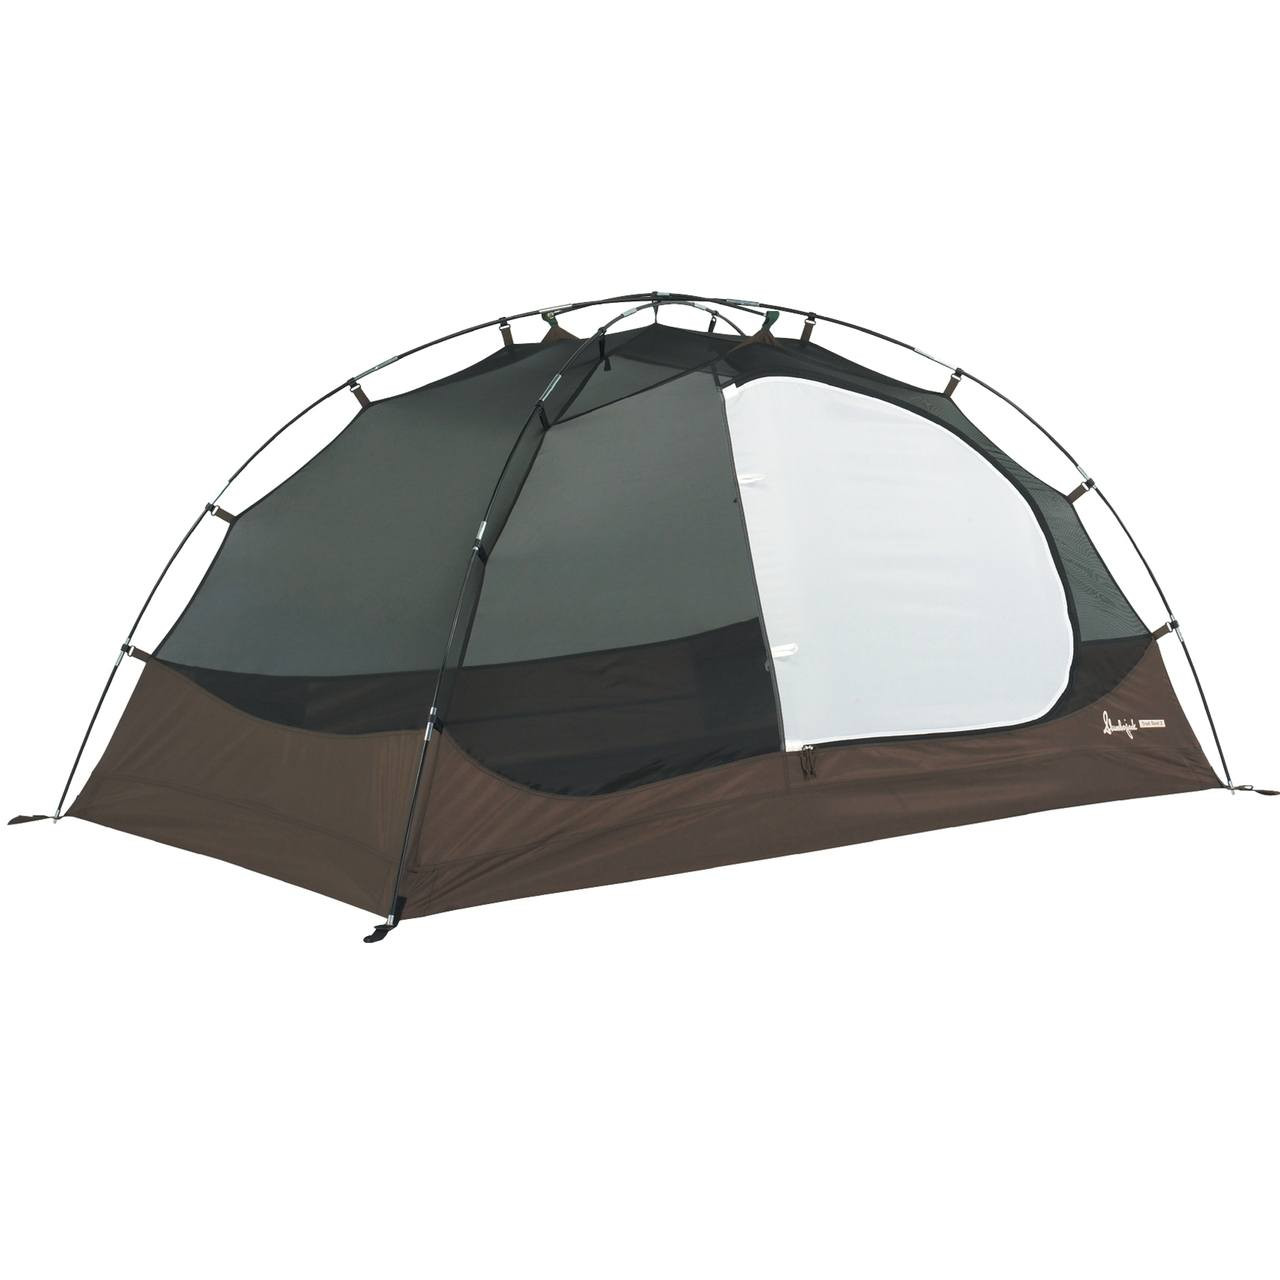 ... Trail Tent 2-Person Tent. Image 1  sc 1 st  Slumberjack : 2person tent - memphite.com